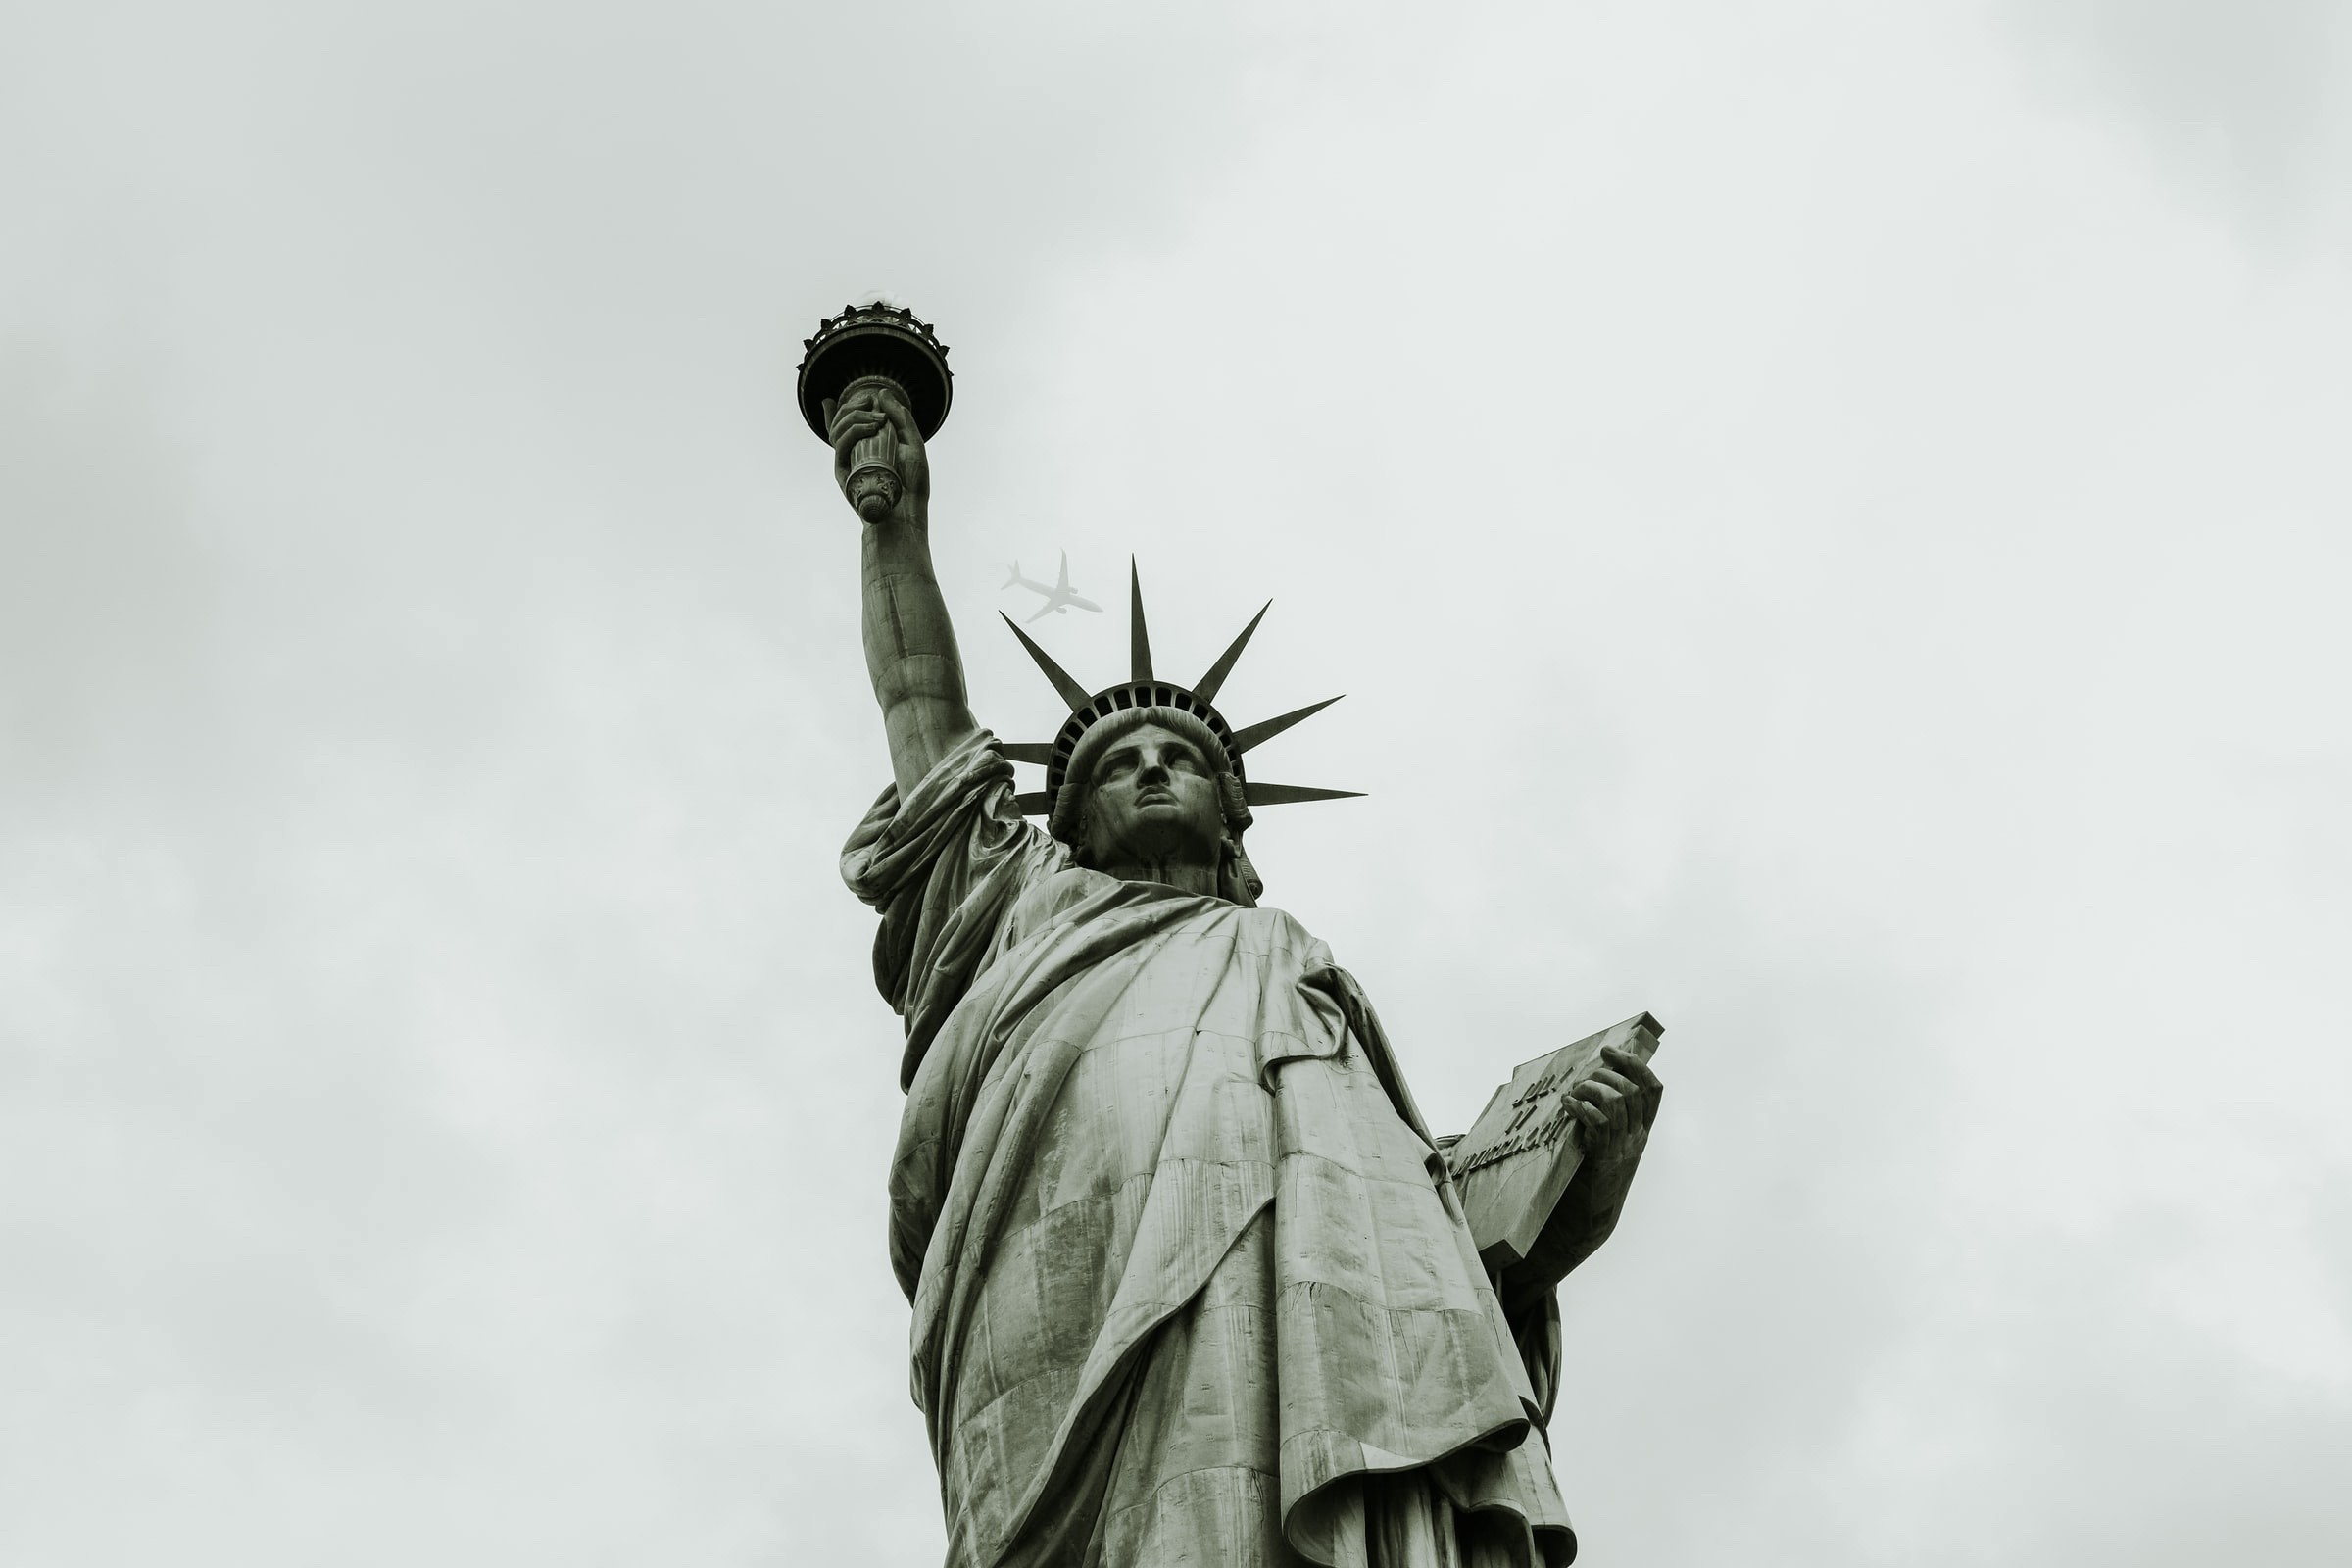 Black and White or Sepia color looking upward at the statue of liberty in America.